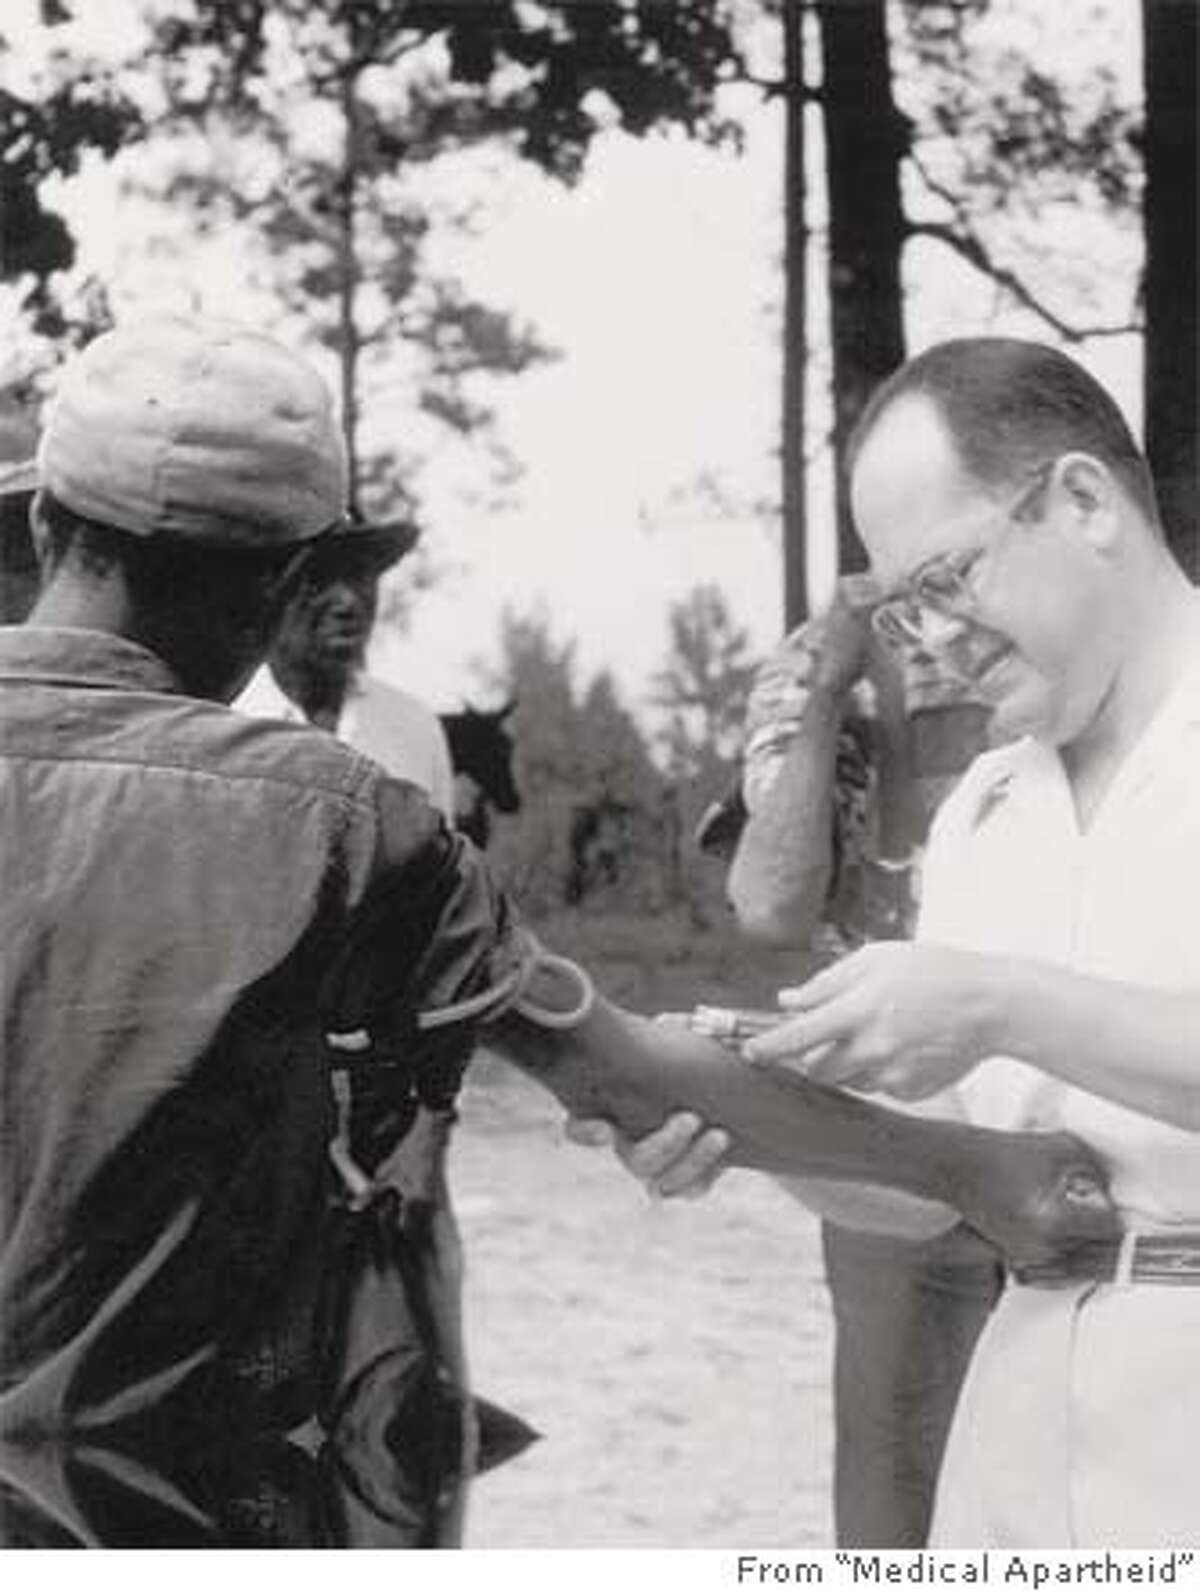 A U.S. Public Health Service doctor in Tuskegee, Ala., injects an African American man, giving him the false impression that his disease was being treated, in the 1932 Tuskegee Syphilis Study. Photo courtesy of Doubleday